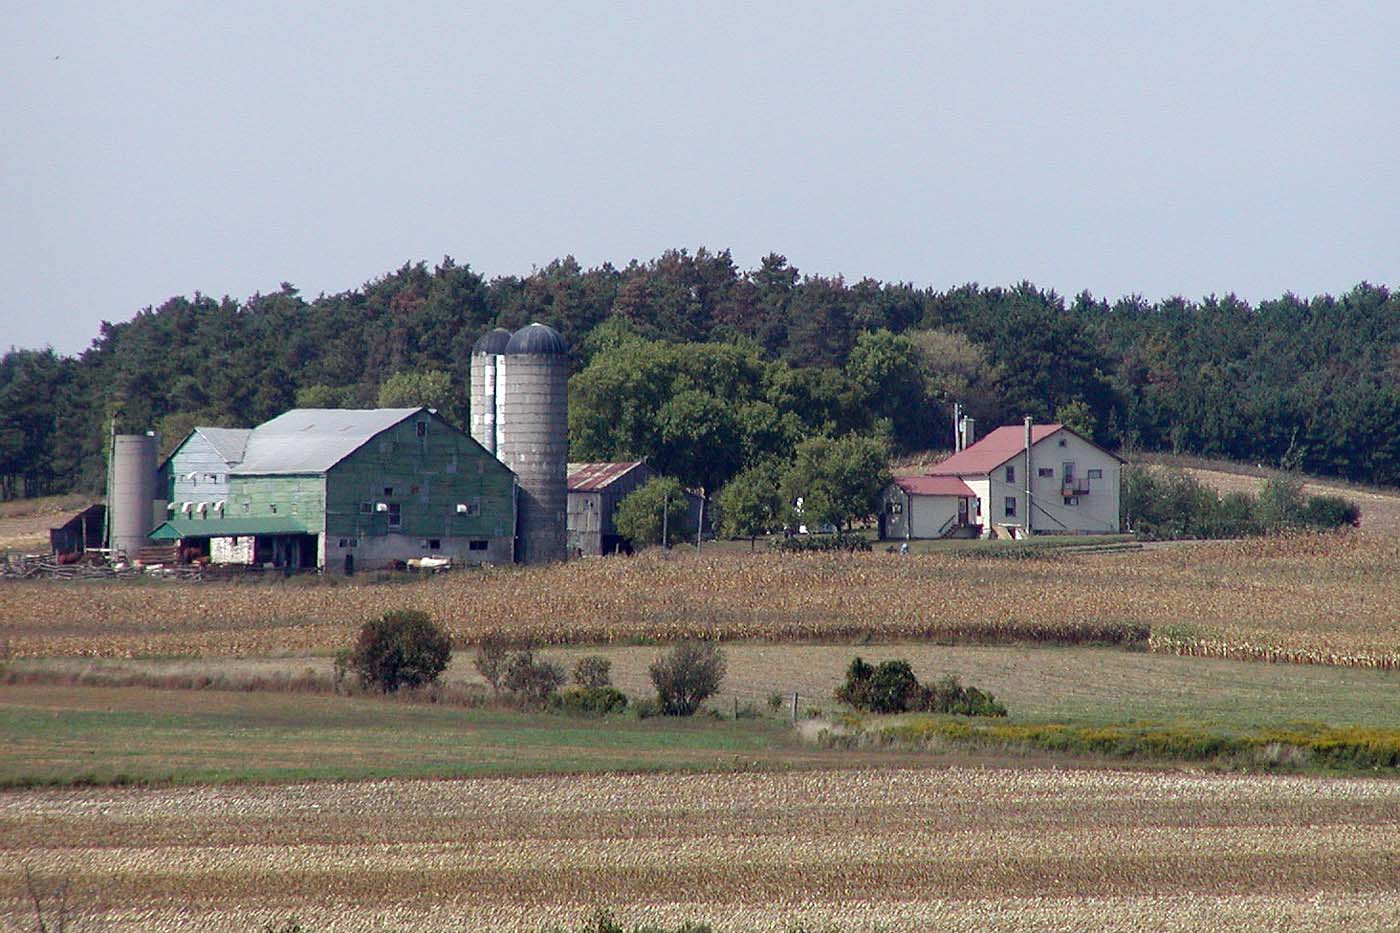 File:Ontario farm.jpg - Wikipedia